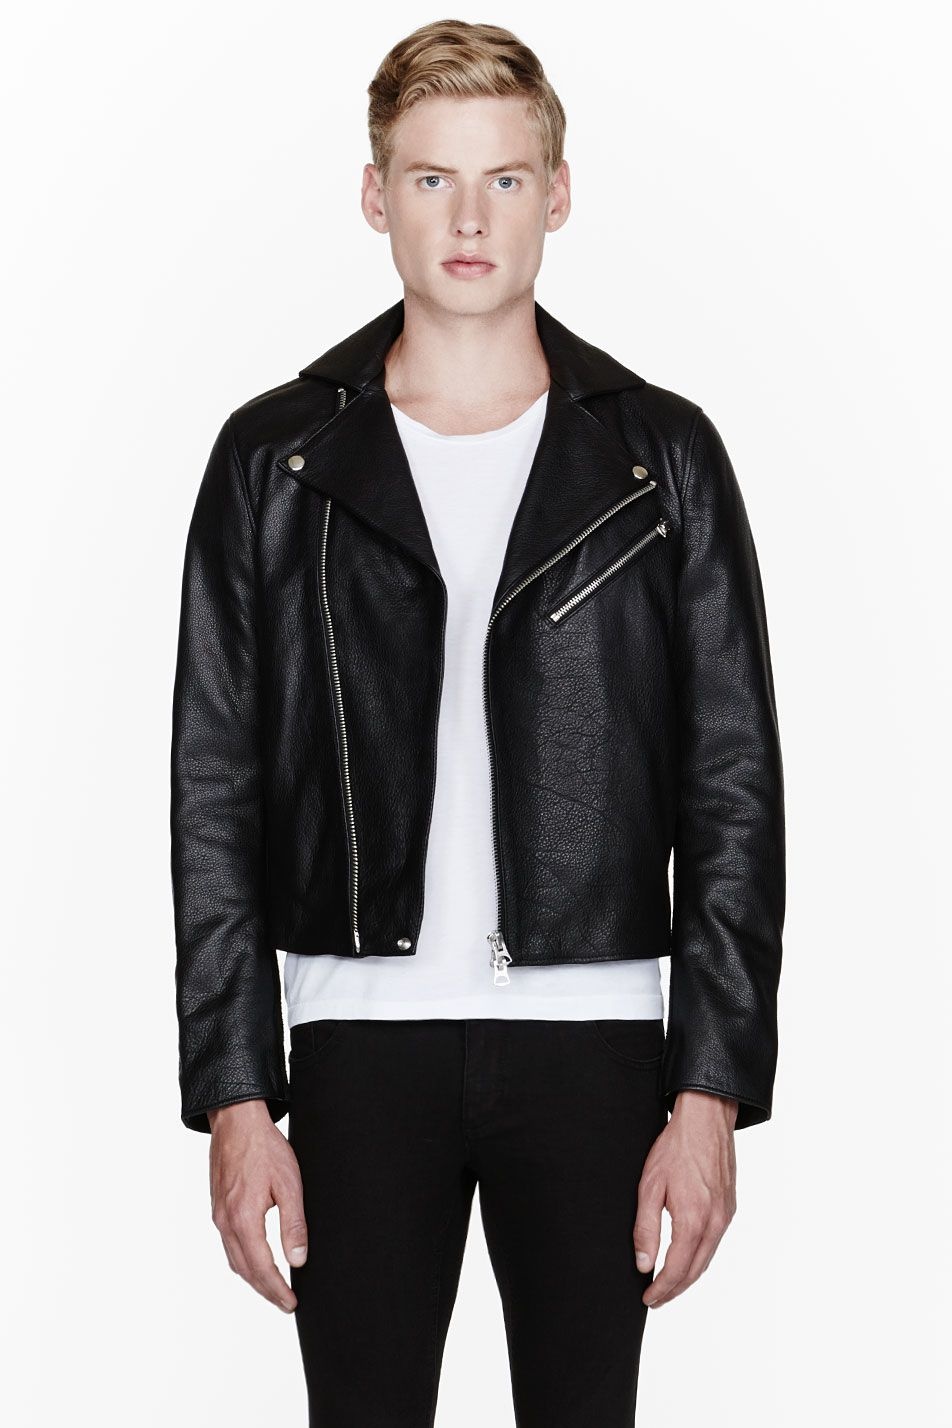 ACNE STUDIOS    Black full grain leather and suede Gibson jacket  32129M030001 Long sleeve full grain leather jacket in black. Notched lapel  collar with ... acaf6e2529a